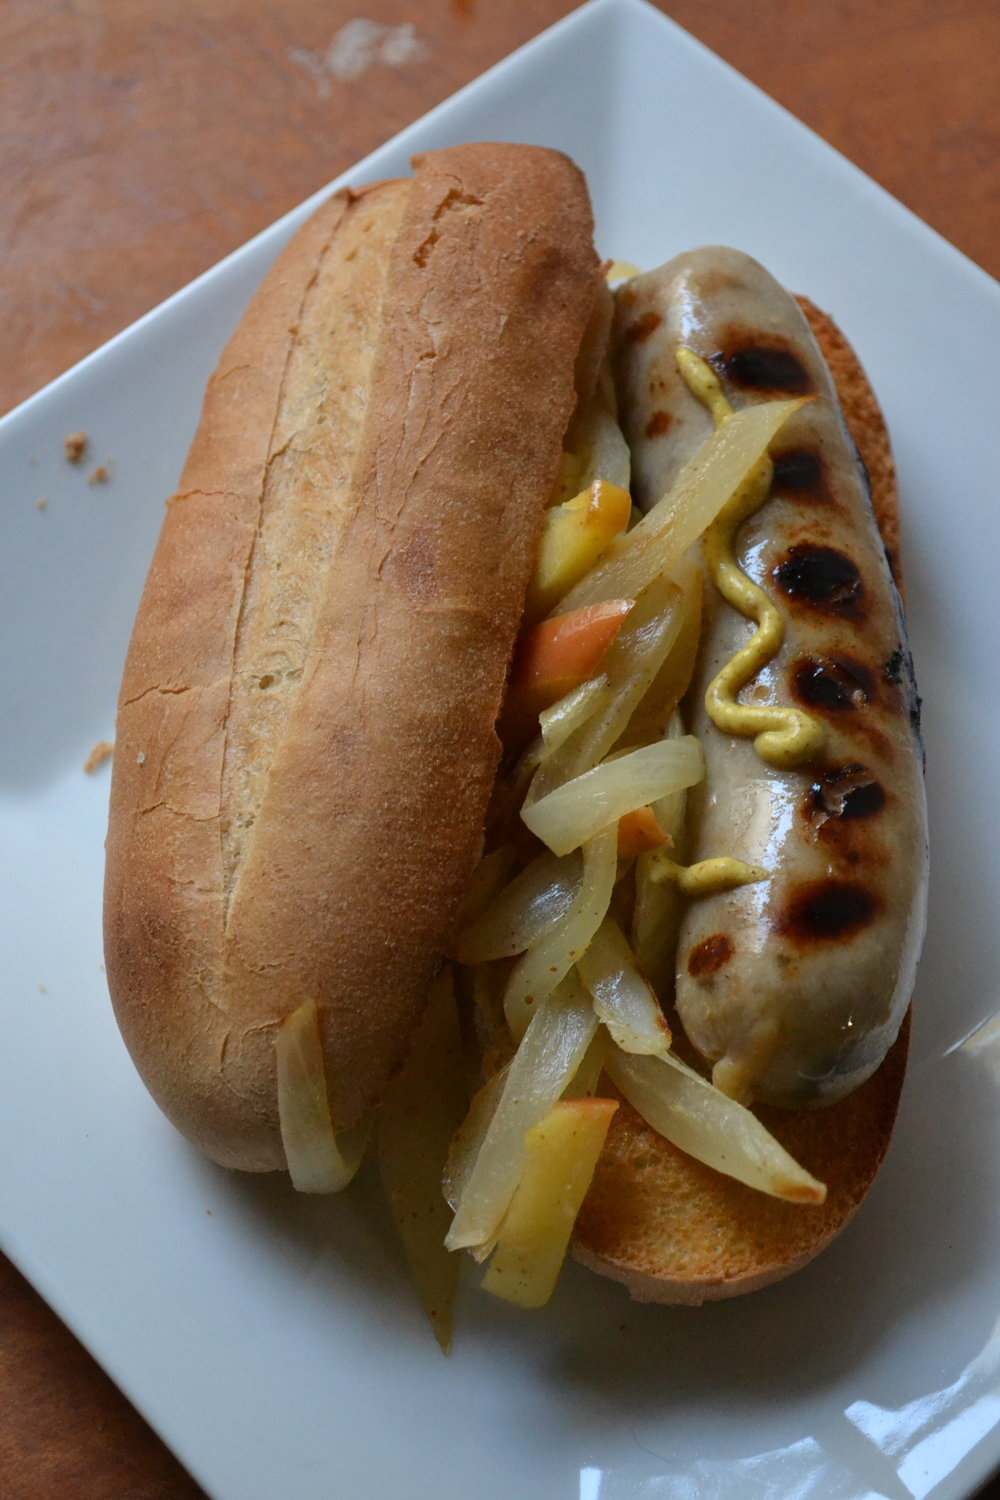 Apple Chicken Sausage Hoagie, super bowl worthy snacks